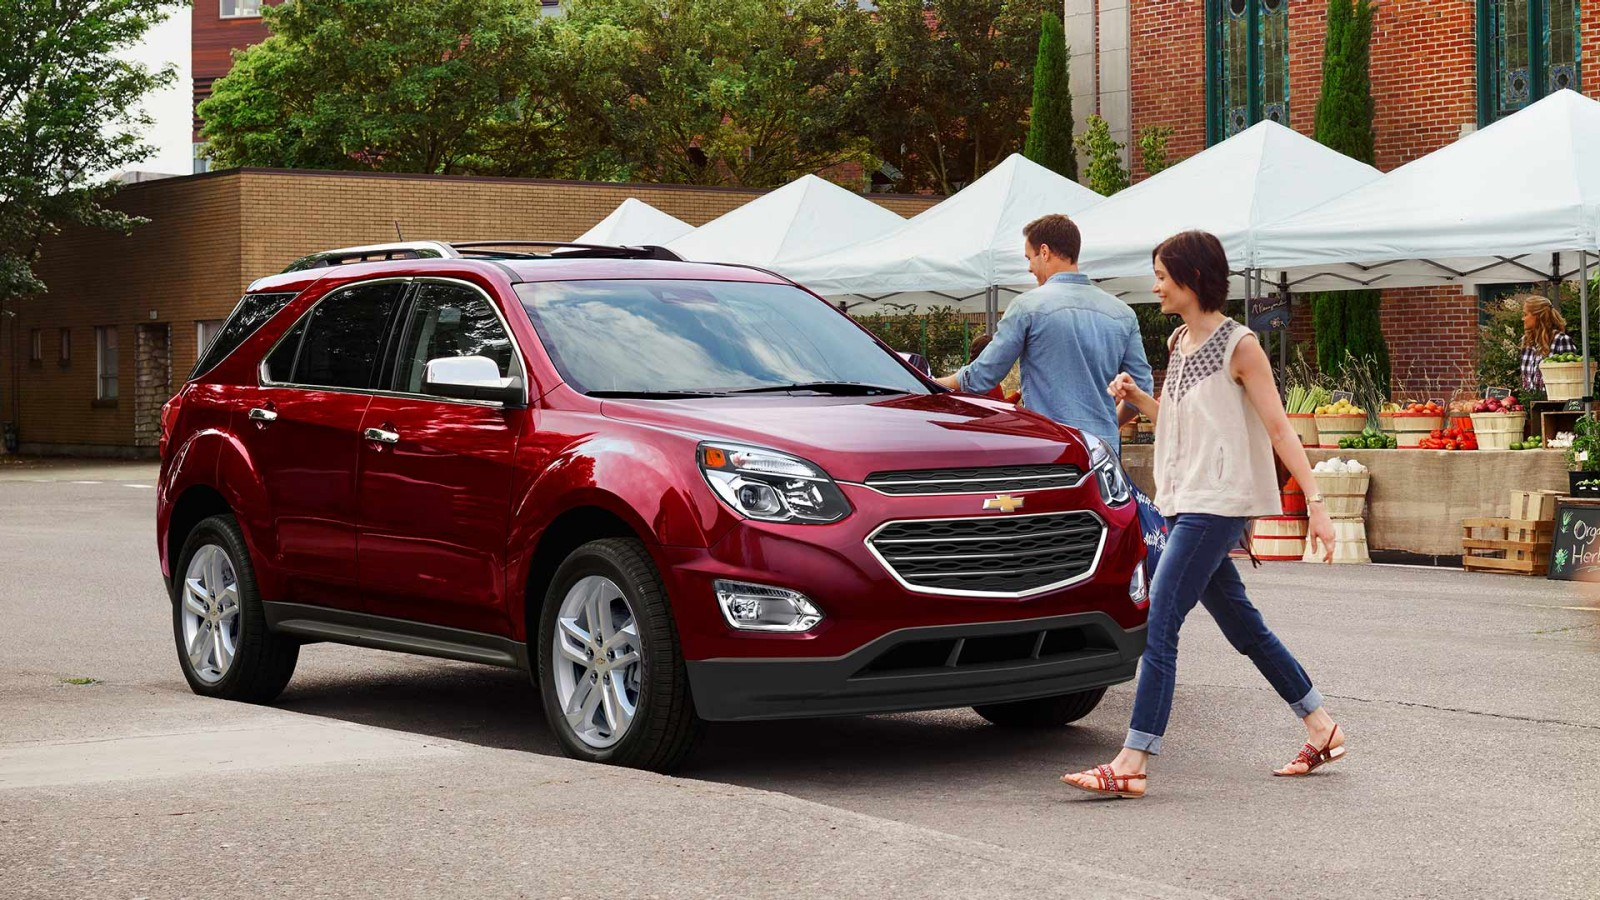 2017 chevrolet equinox price. Black Bedroom Furniture Sets. Home Design Ideas